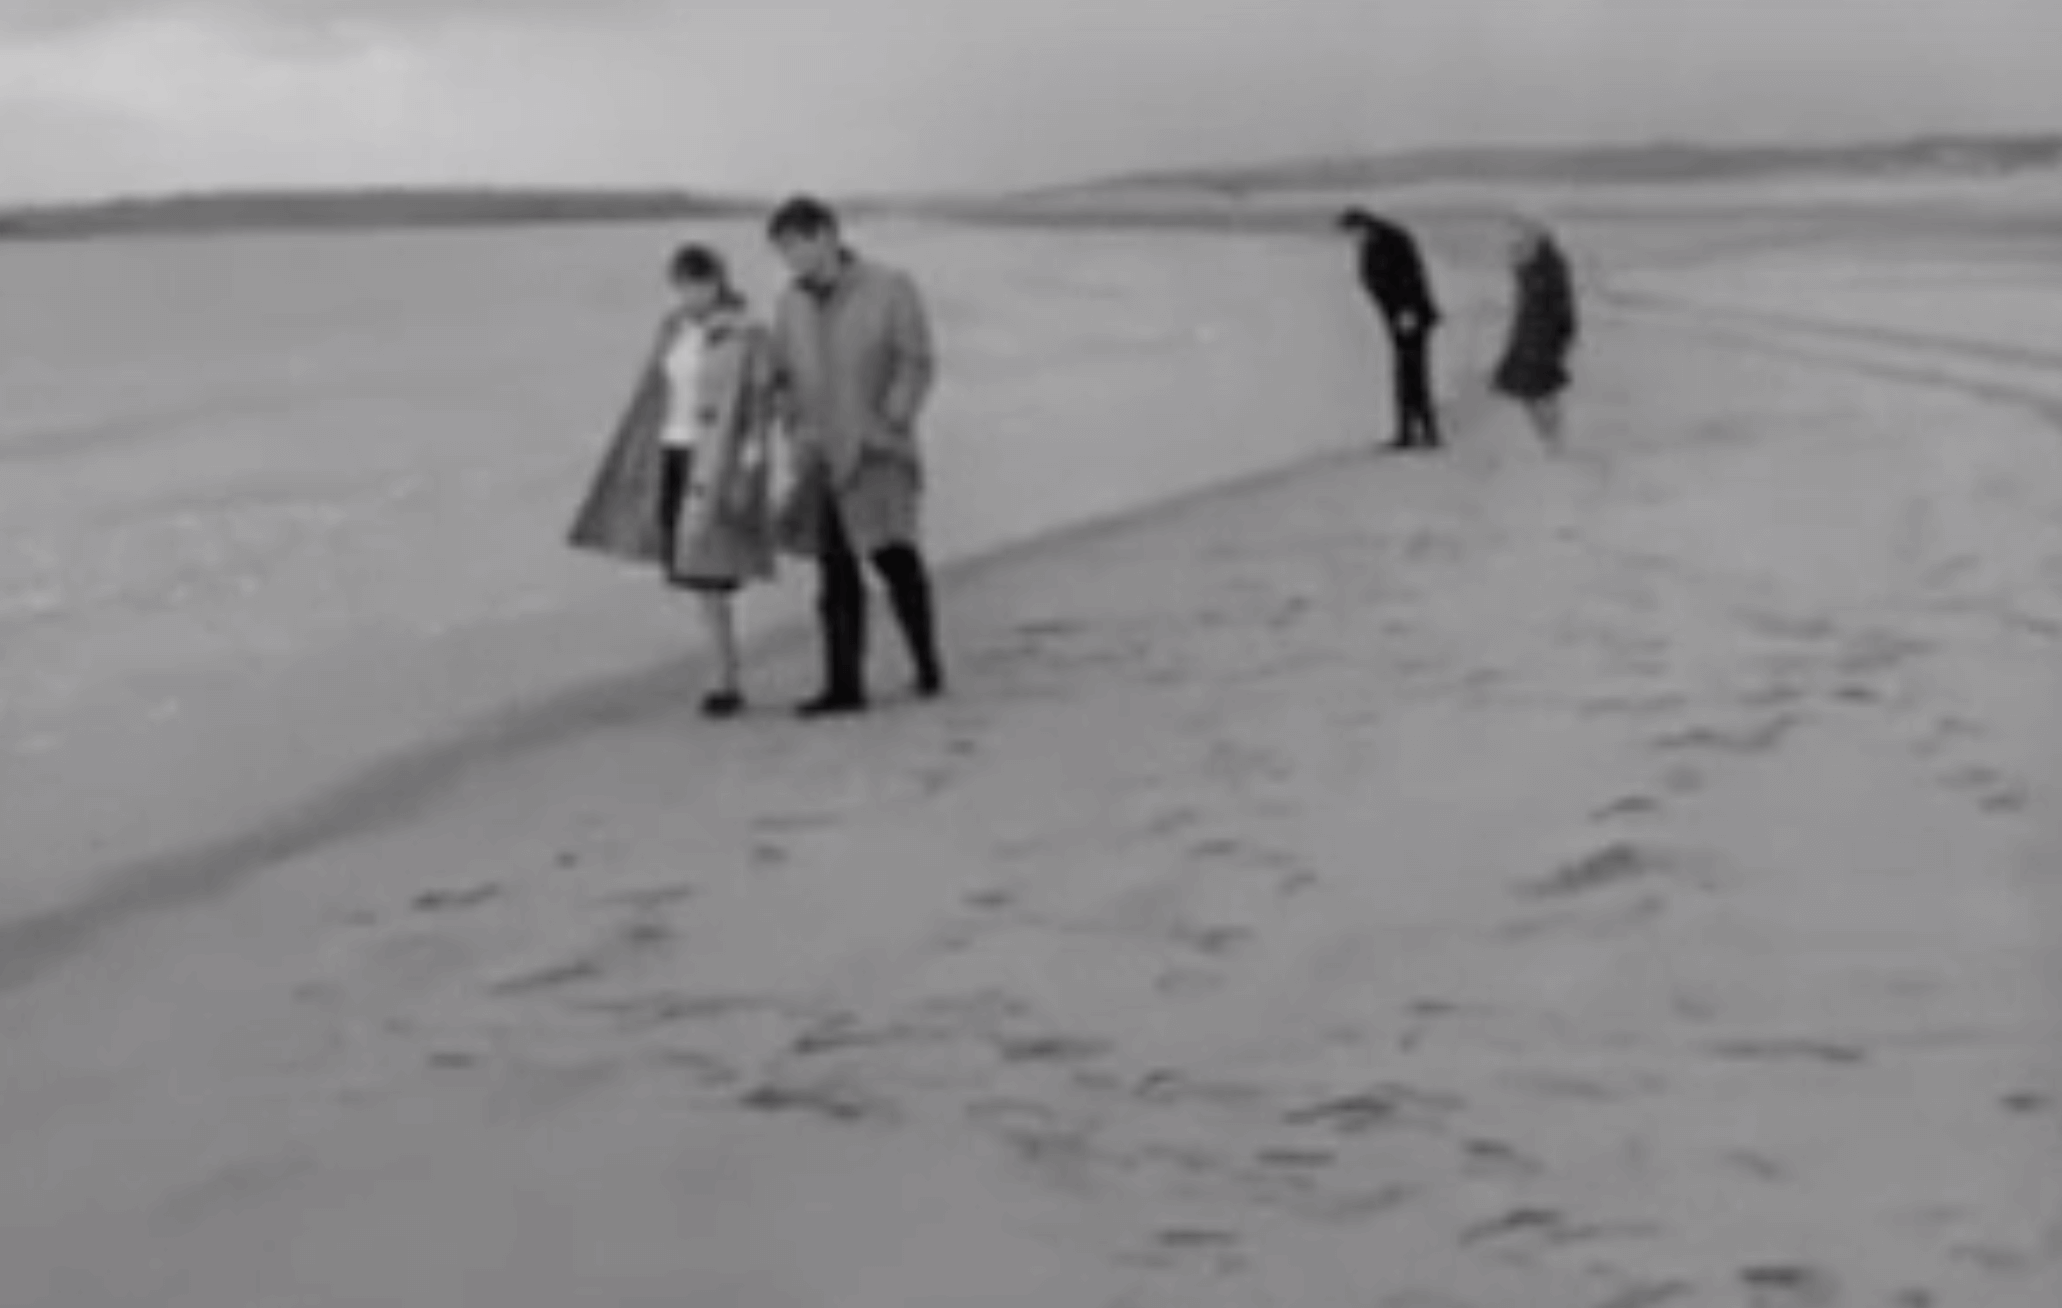 The Loneliness of the Long Distance Runner filmed at Camber Sands